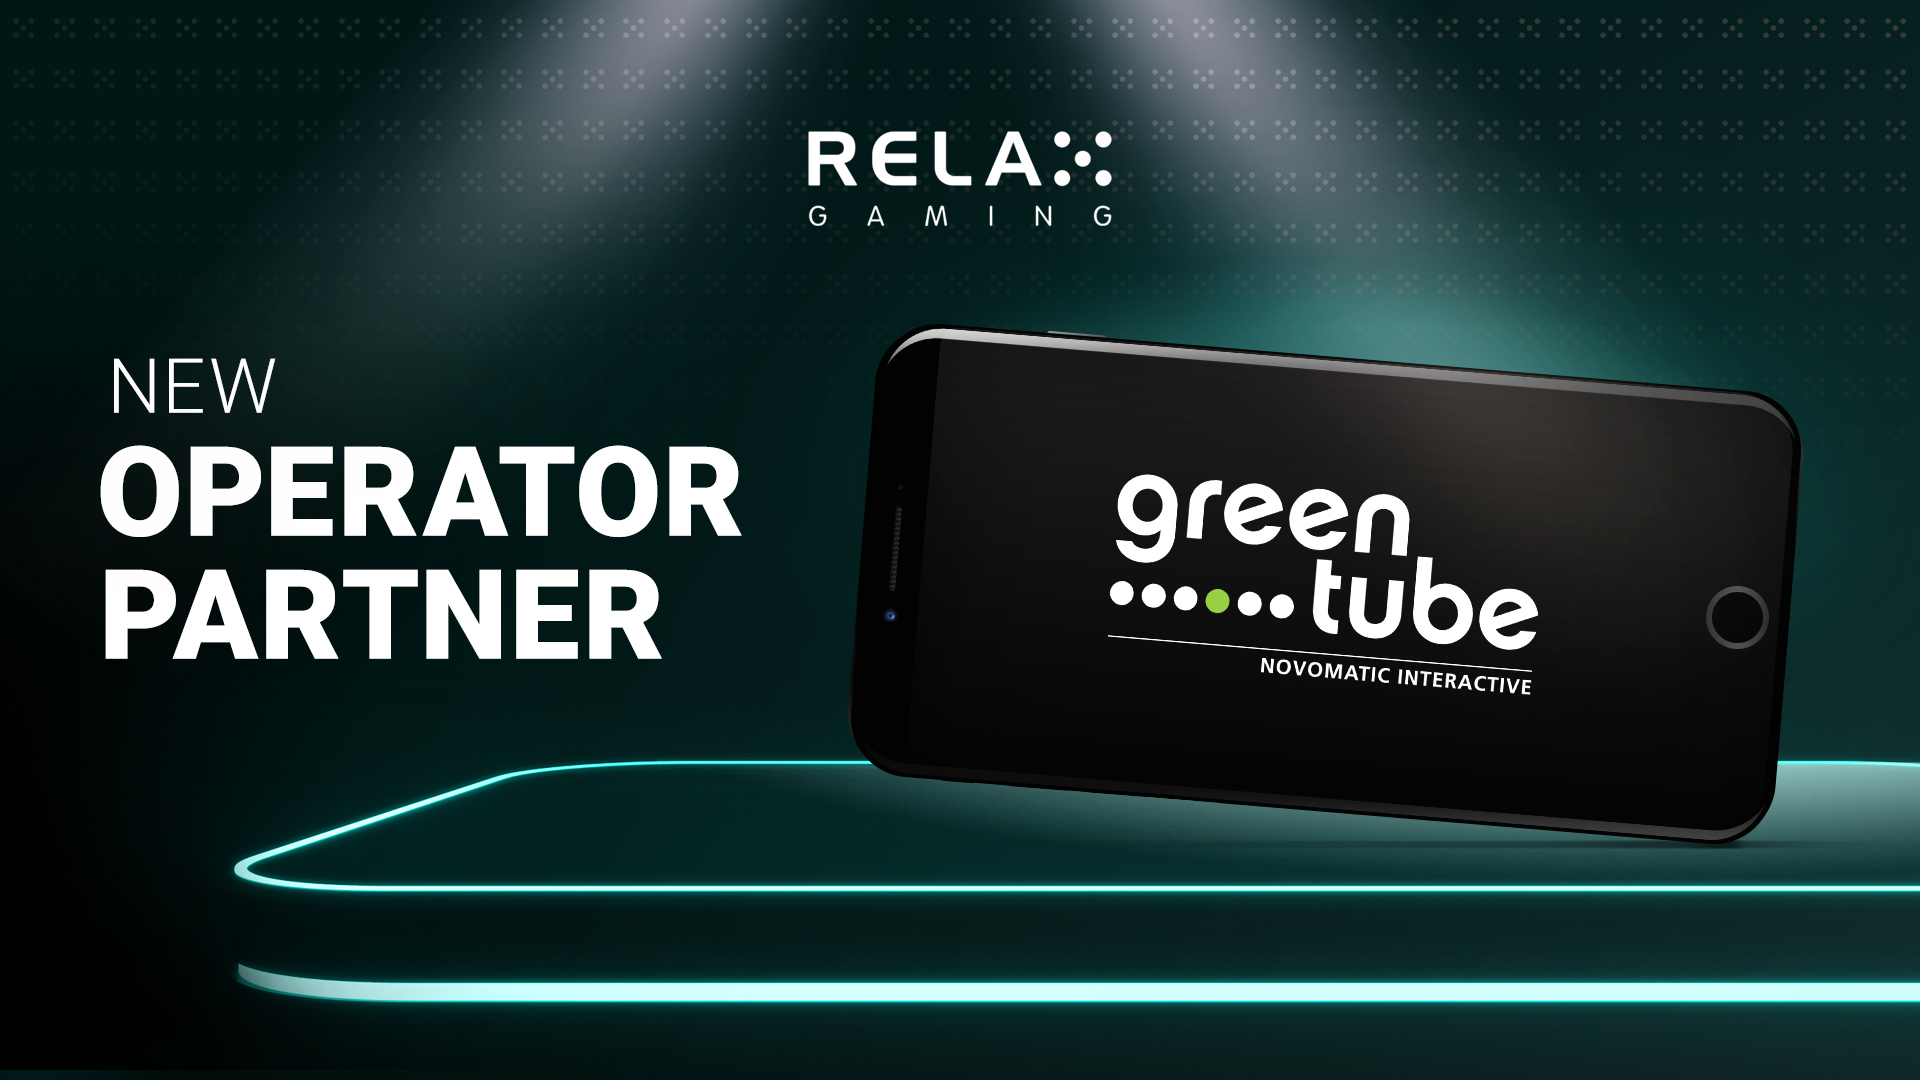 Relax Gaming partners with Greentube in content distribution deal